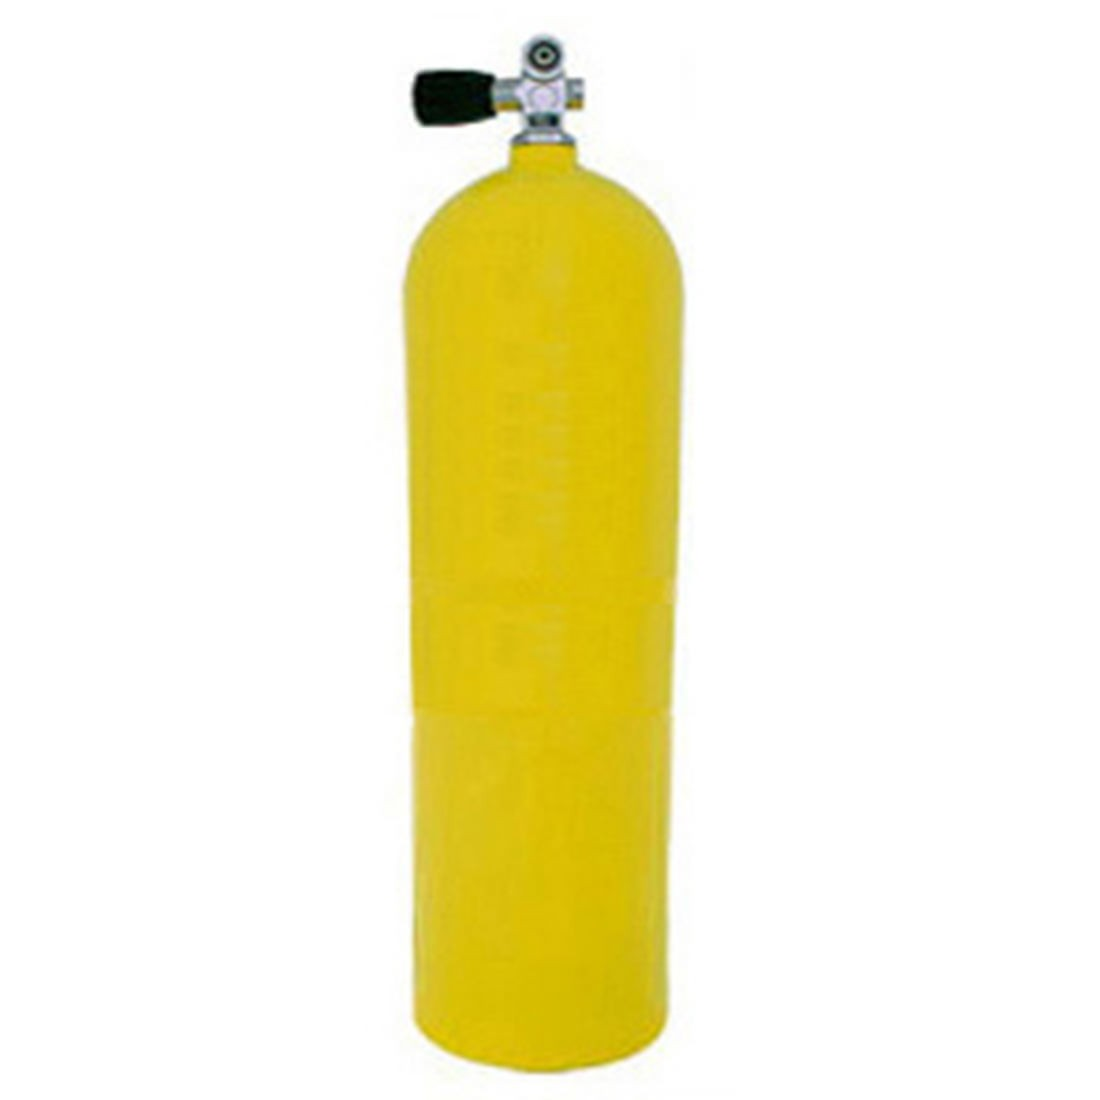 Scuba2 besides Eqpt 05 tanks further Tanks furthermore The Right Scuba Cylinder Can Make A Big Difference likewise 491046 Scuba Tank Rack. on aluminum scuba tank